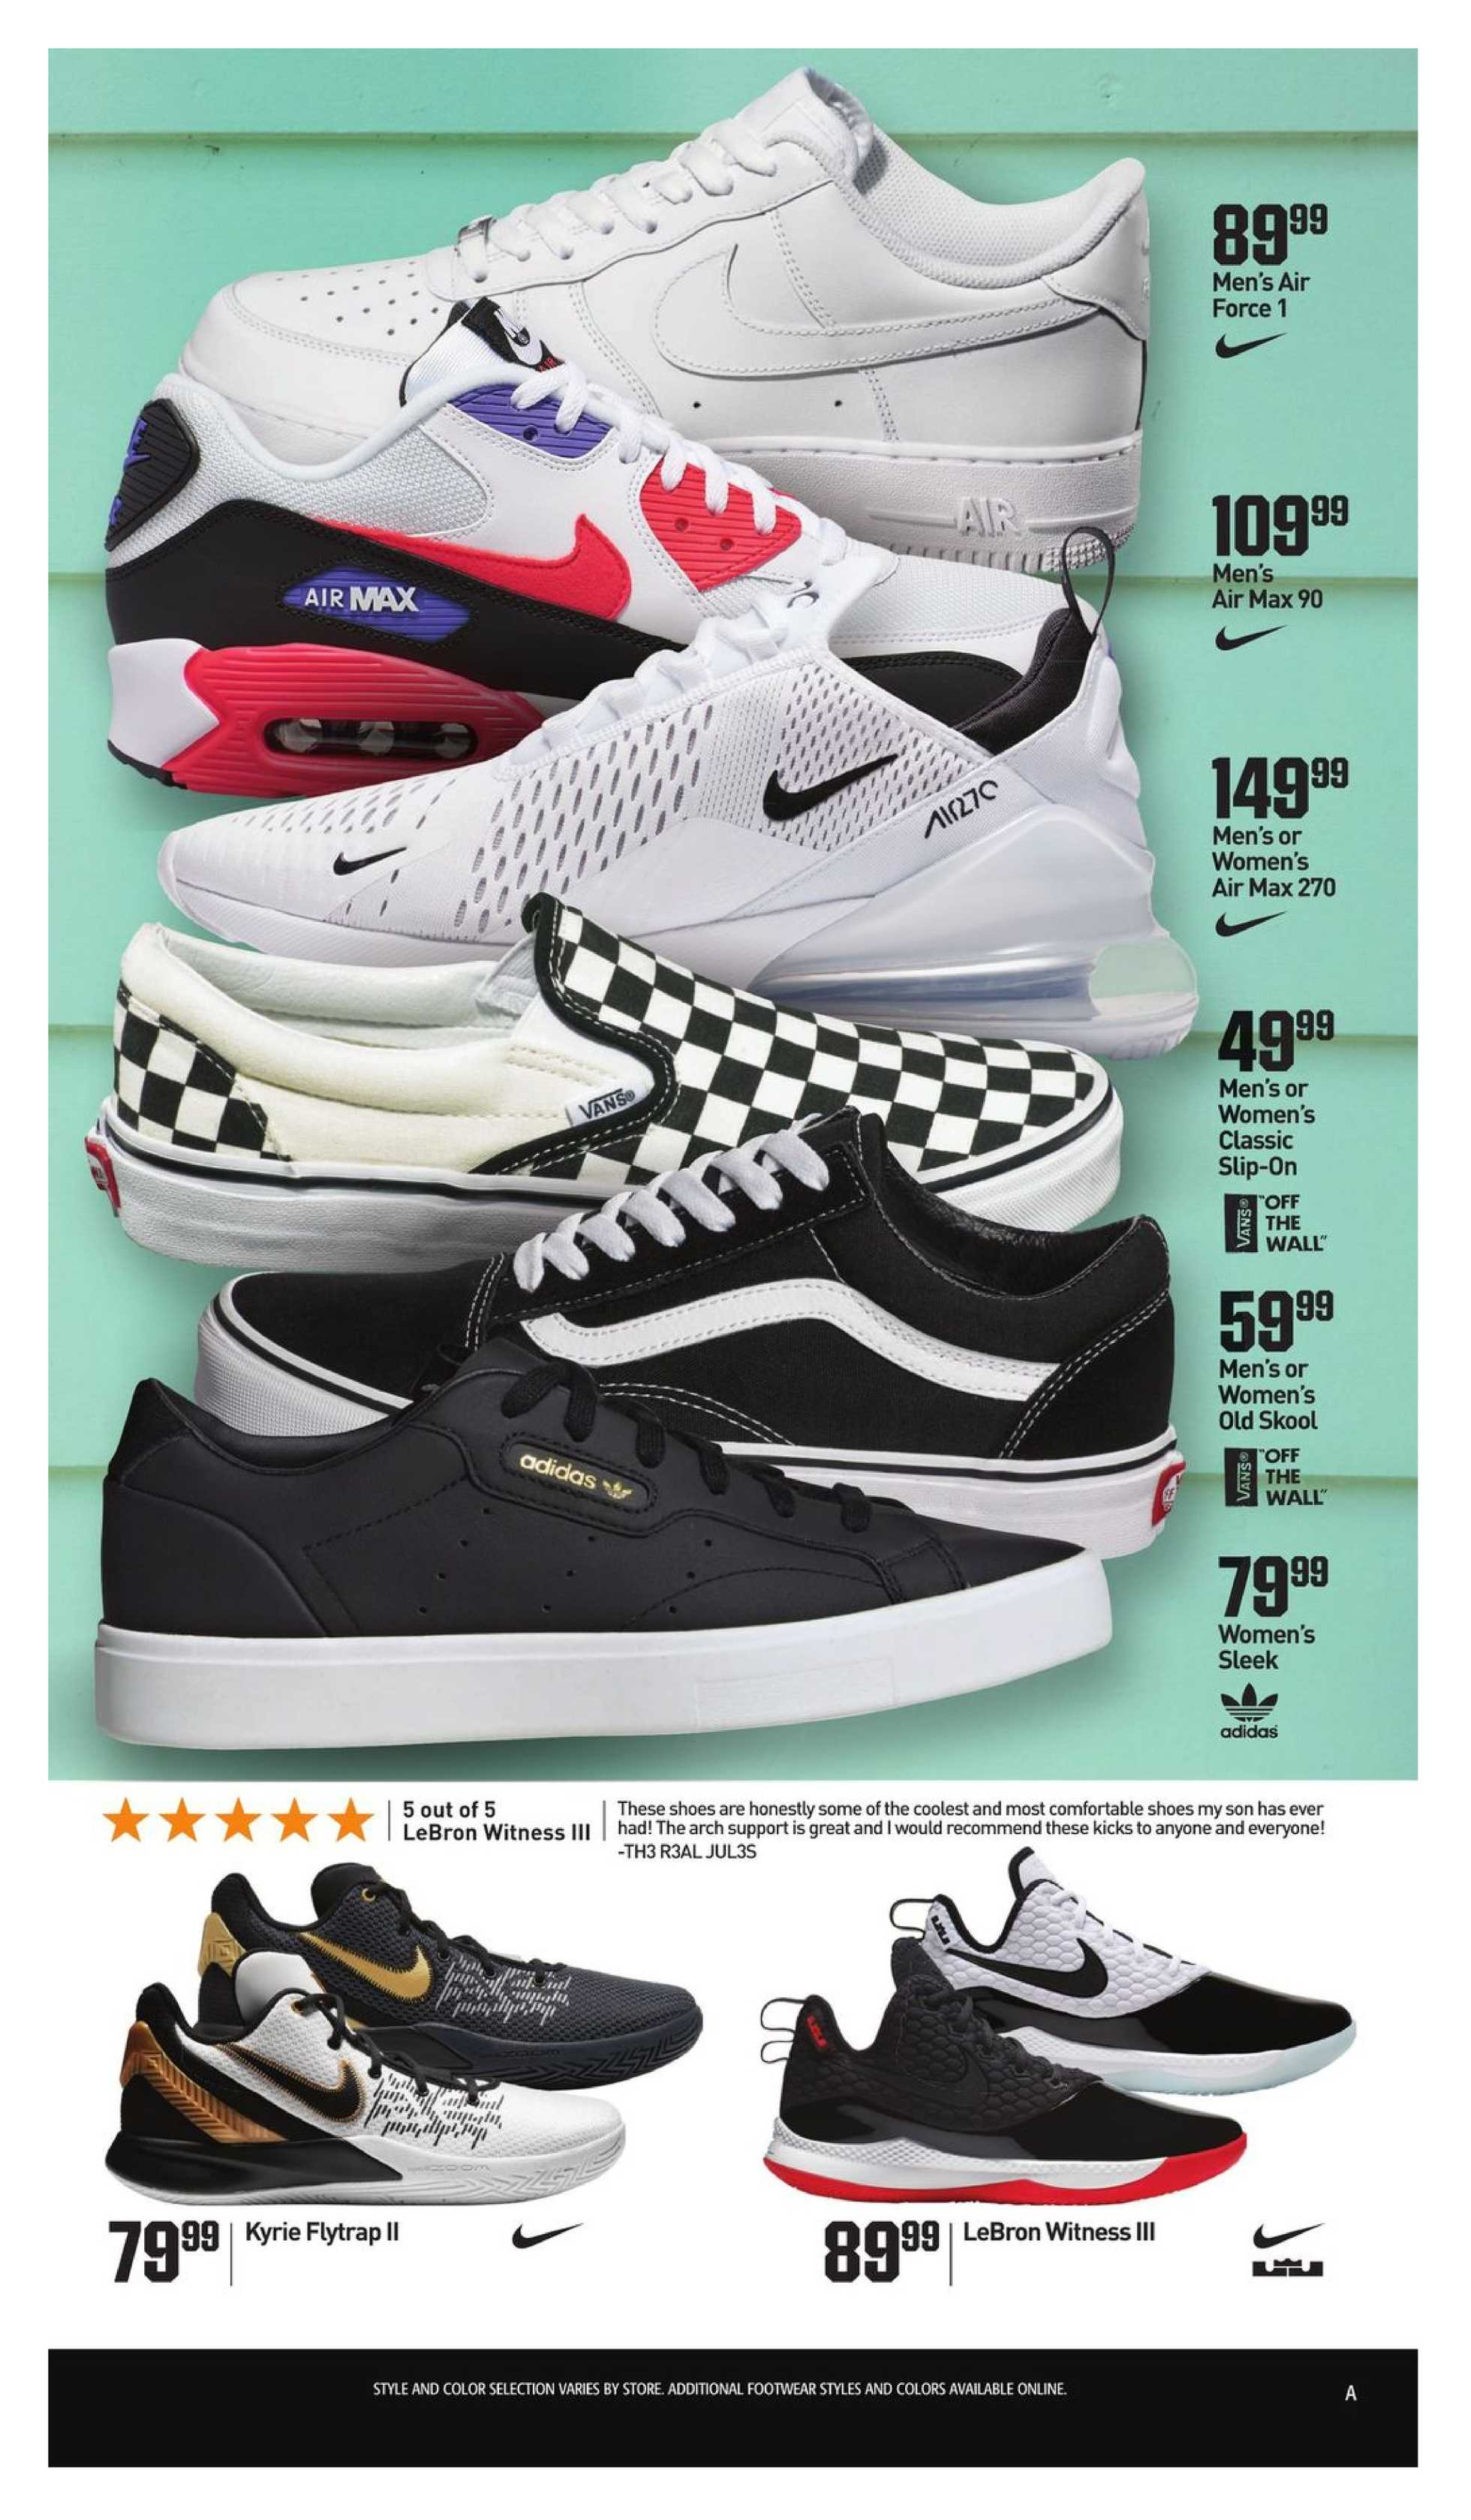 competitive price 06956 3f083 Current flyer of Dick's Sporting Goods | us.promotons.com